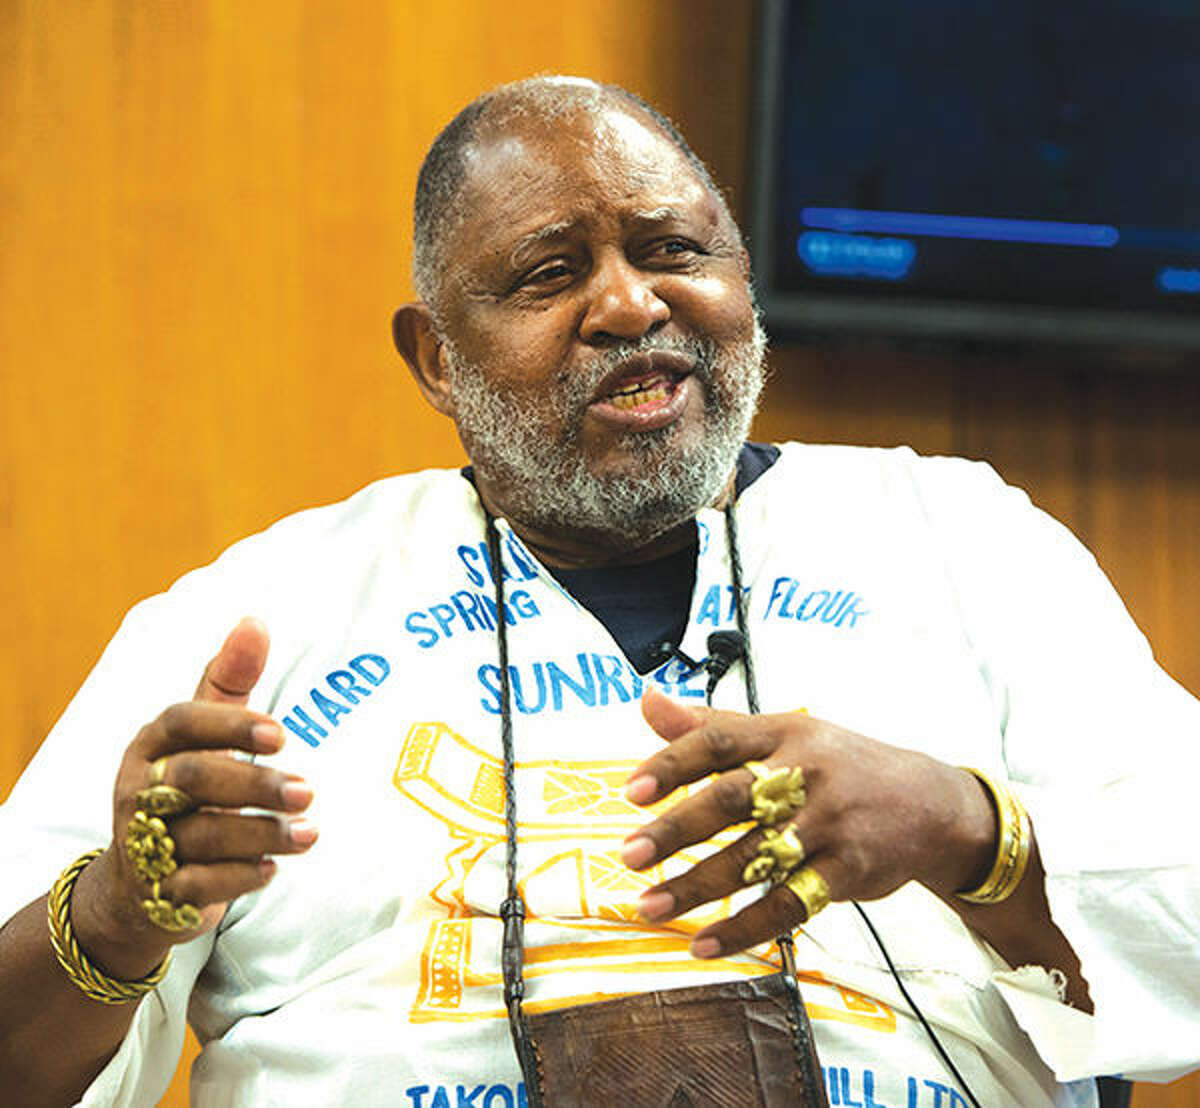 Ser Seshsh Ab Heter - C.M. Boxley speaks to an audience on Tuesday of mostly history course students. He is seen dressed in a white handmade tunic made out of flour sacks with images of the Sankofa bird on it.